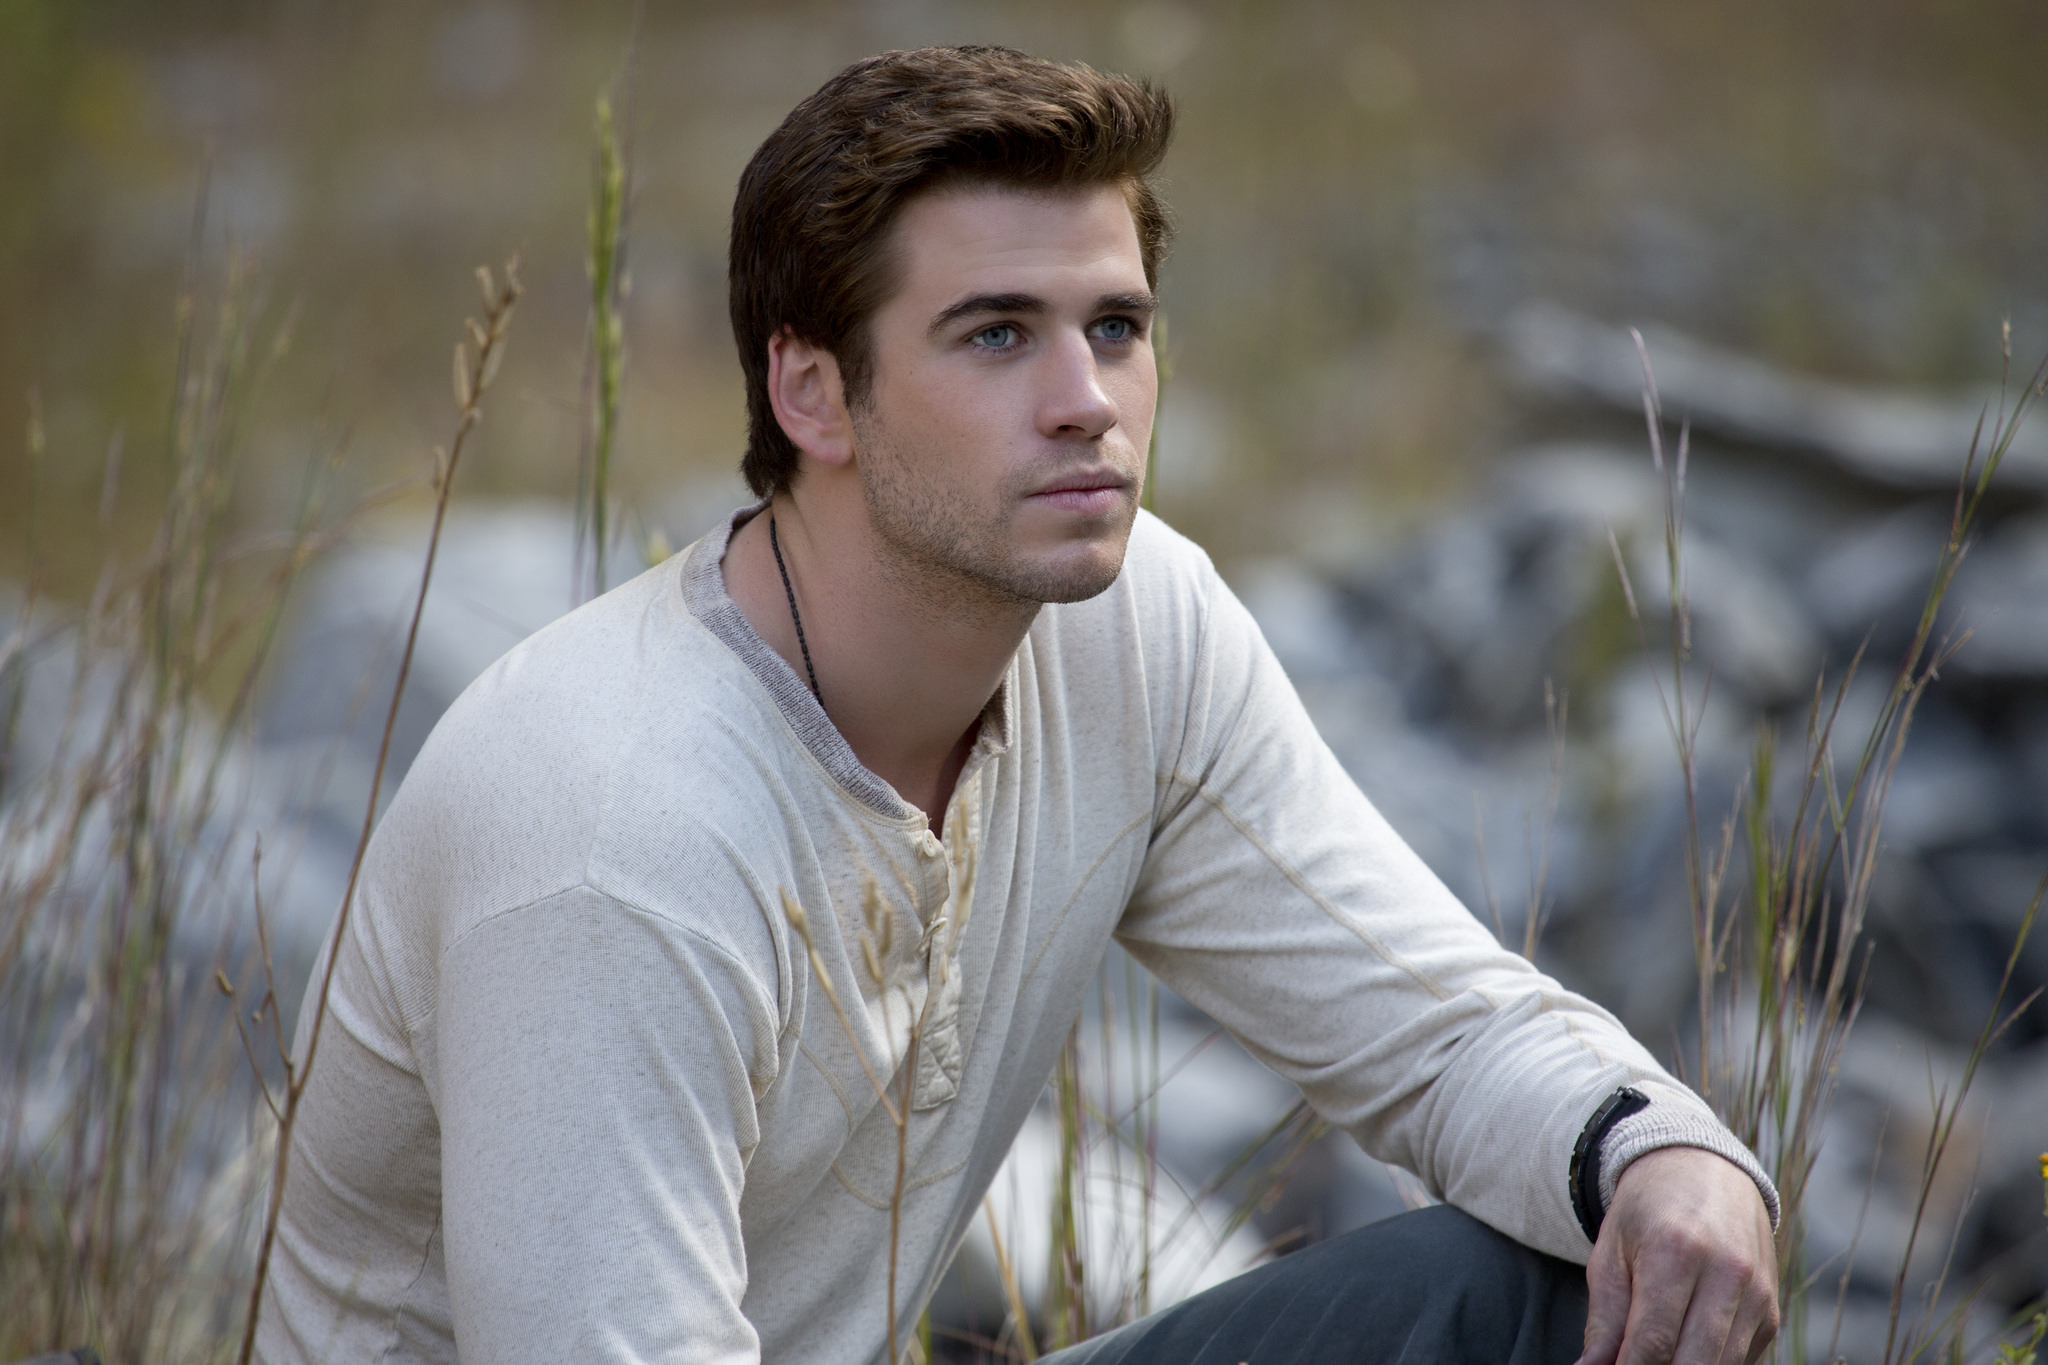 Liam Hemsworth Actor The Hunger Games Liam Hemsworth was born on January 13 1990 in Melbourne Australia and is the younger brother of actors Chris Hemsworth